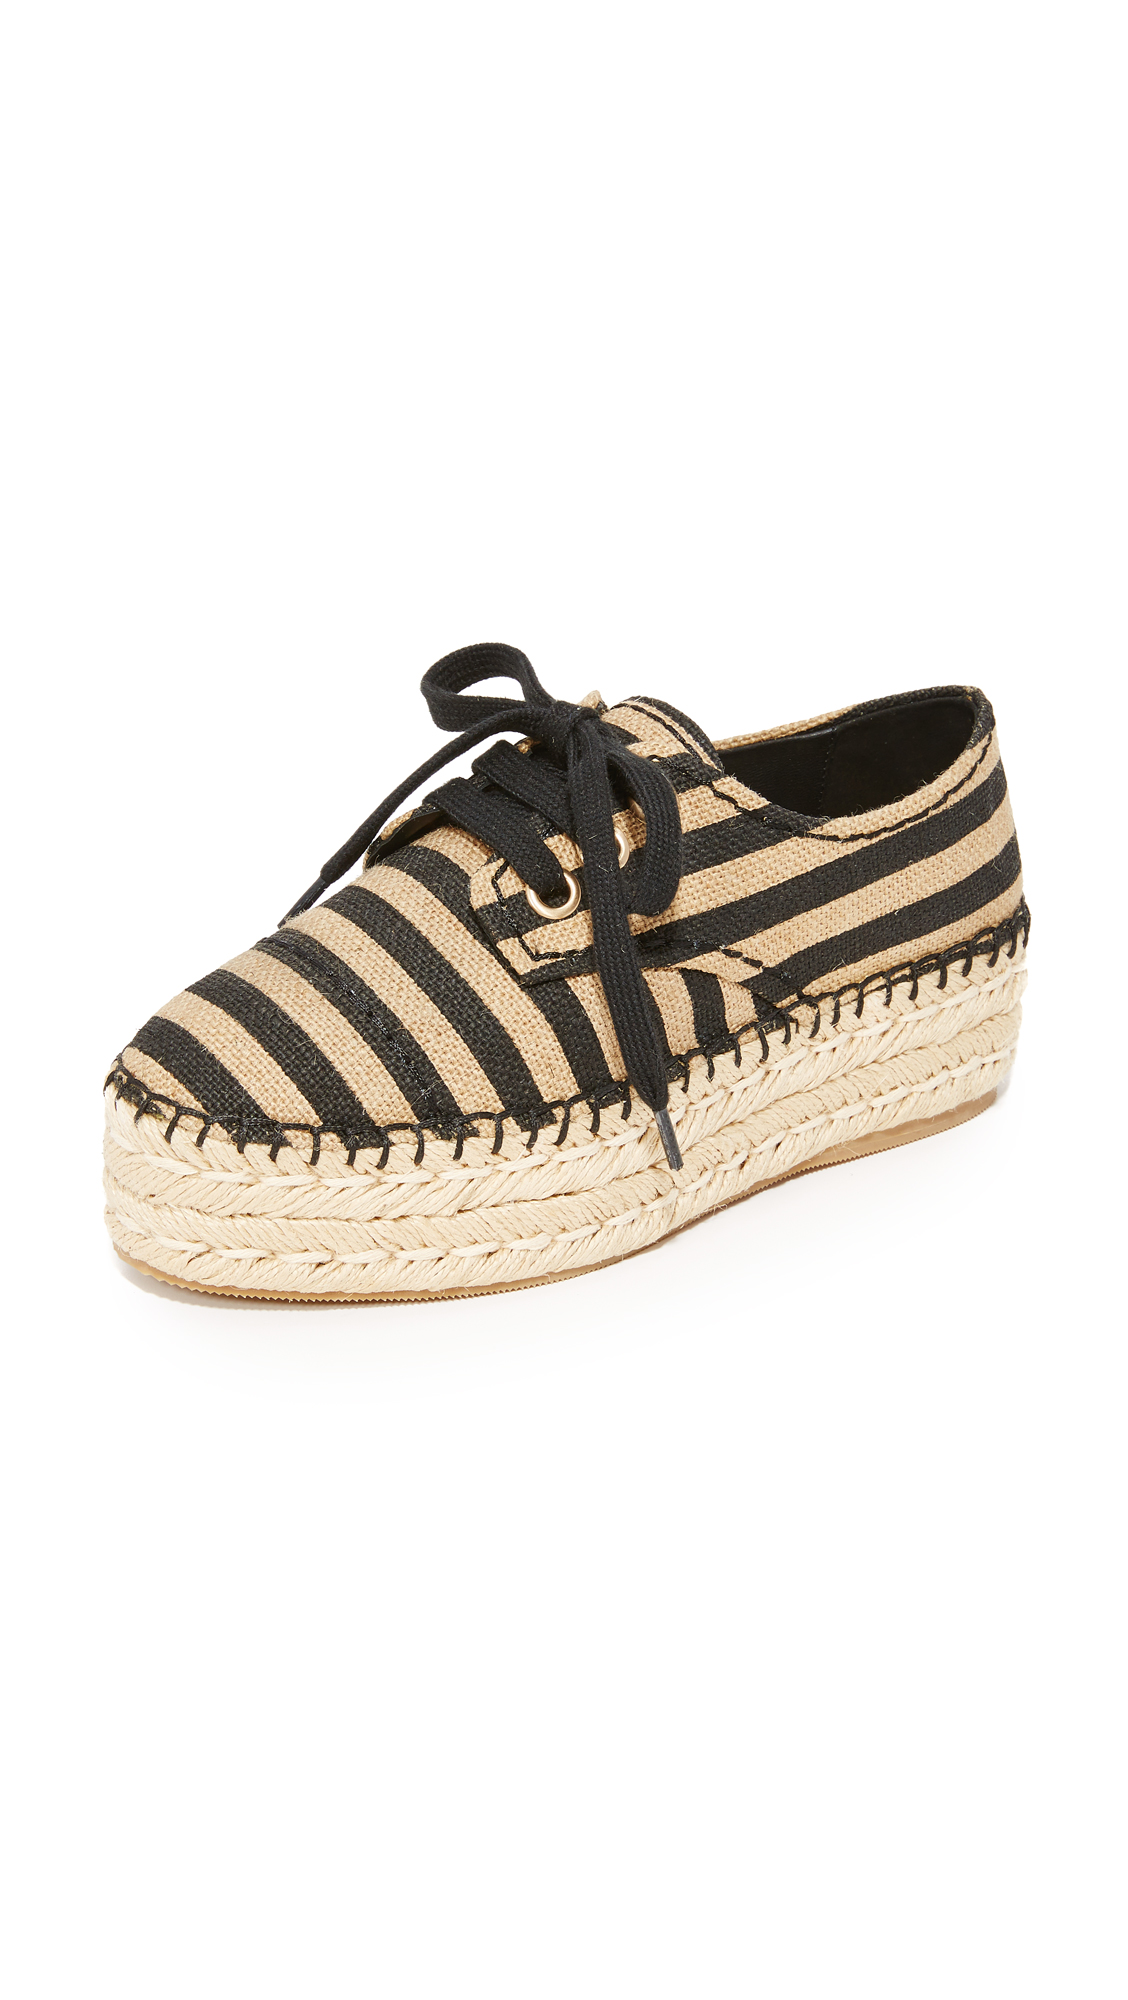 Alice + Olivia Rory Espadrille Platform Sneakers - Natural/Black Stripe at Shopbop